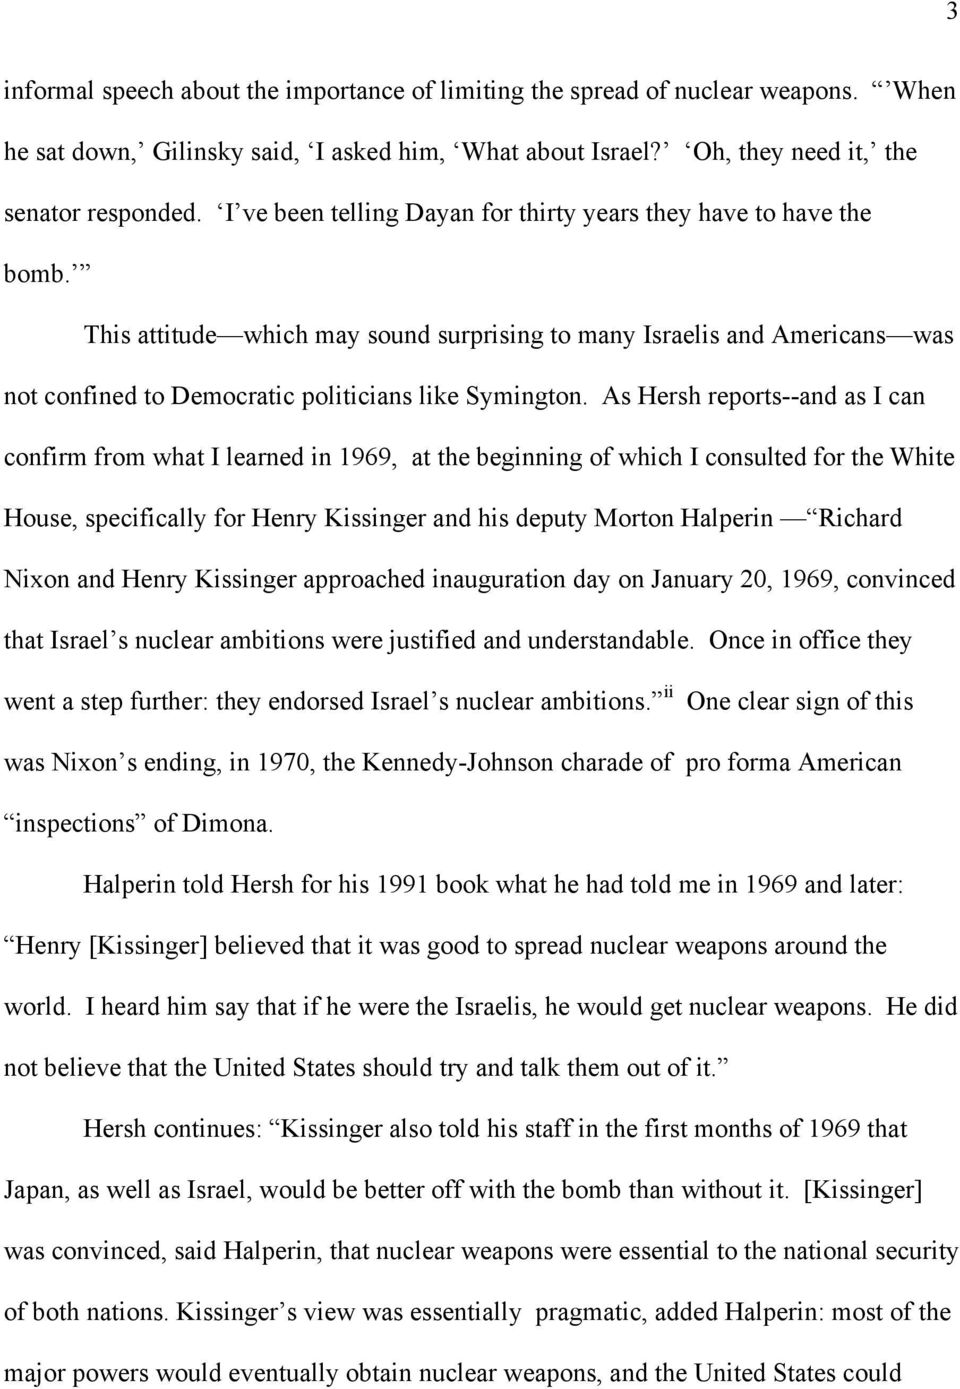 As Hersh reports--and as I can confirm from what I learned in 1969, at the beginning of which I consulted for the White House, specifically for Henry Kissinger and his deputy Morton Halperin Richard